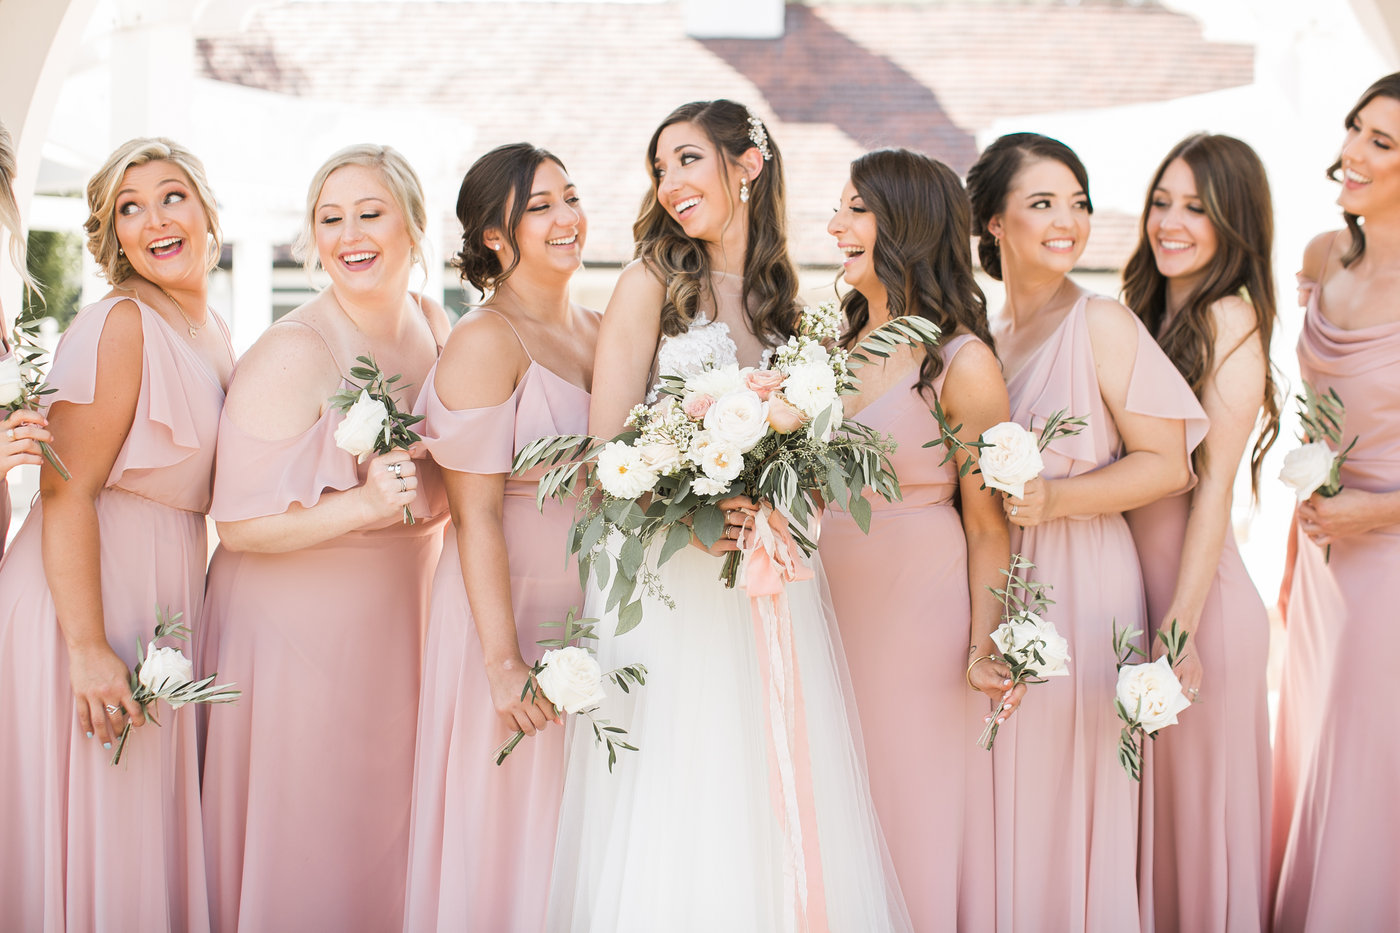 Ivory & Bliss Photography